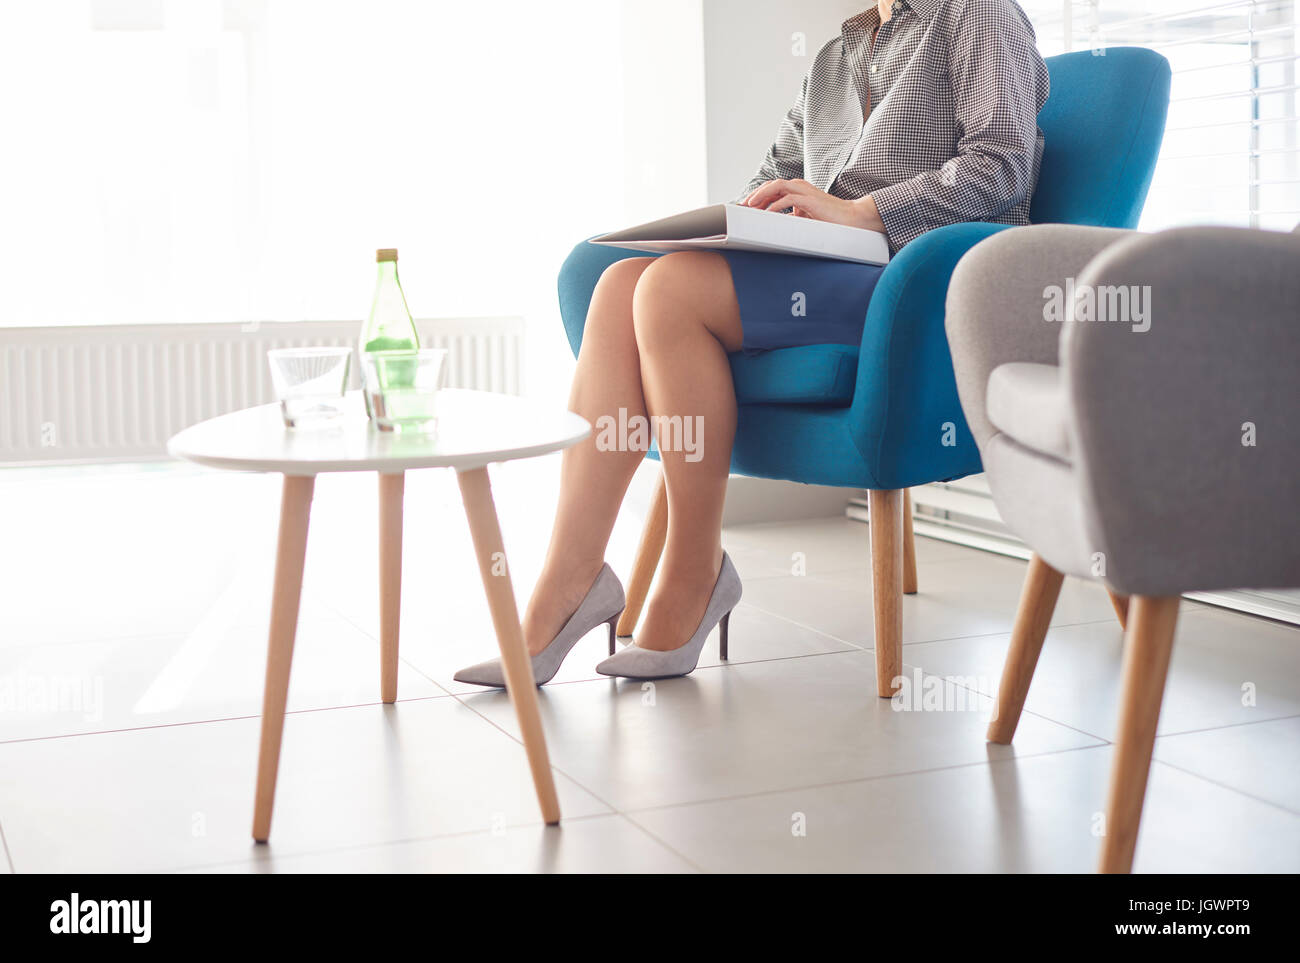 Candidate waiting at job interview - Stock Image